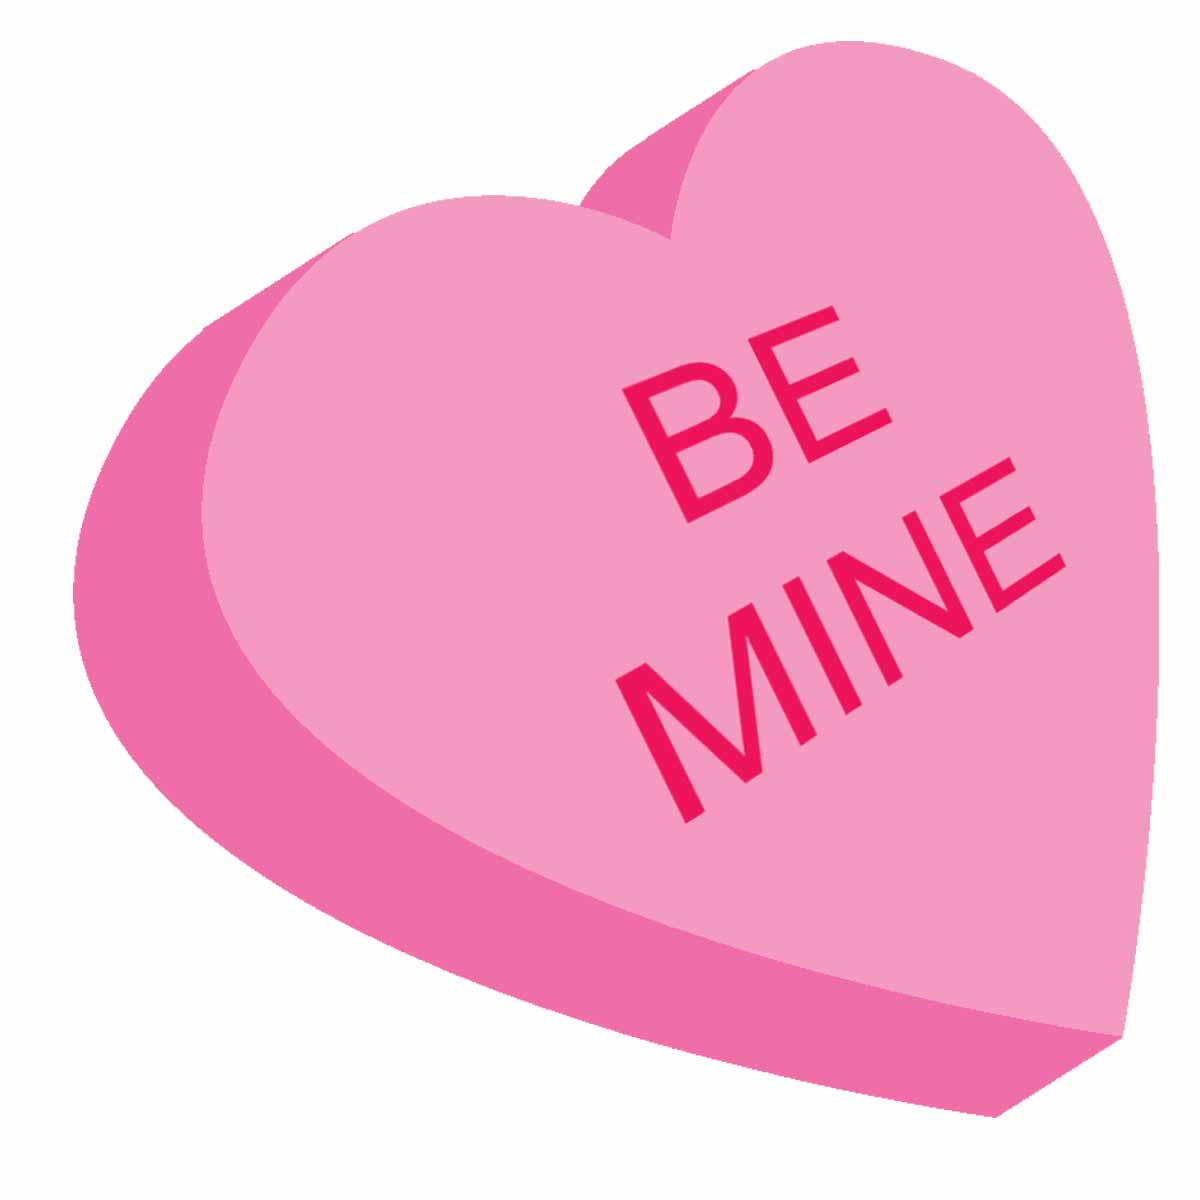 1200x1200 Valentines Day Clipart For Sharing On Valentines Day